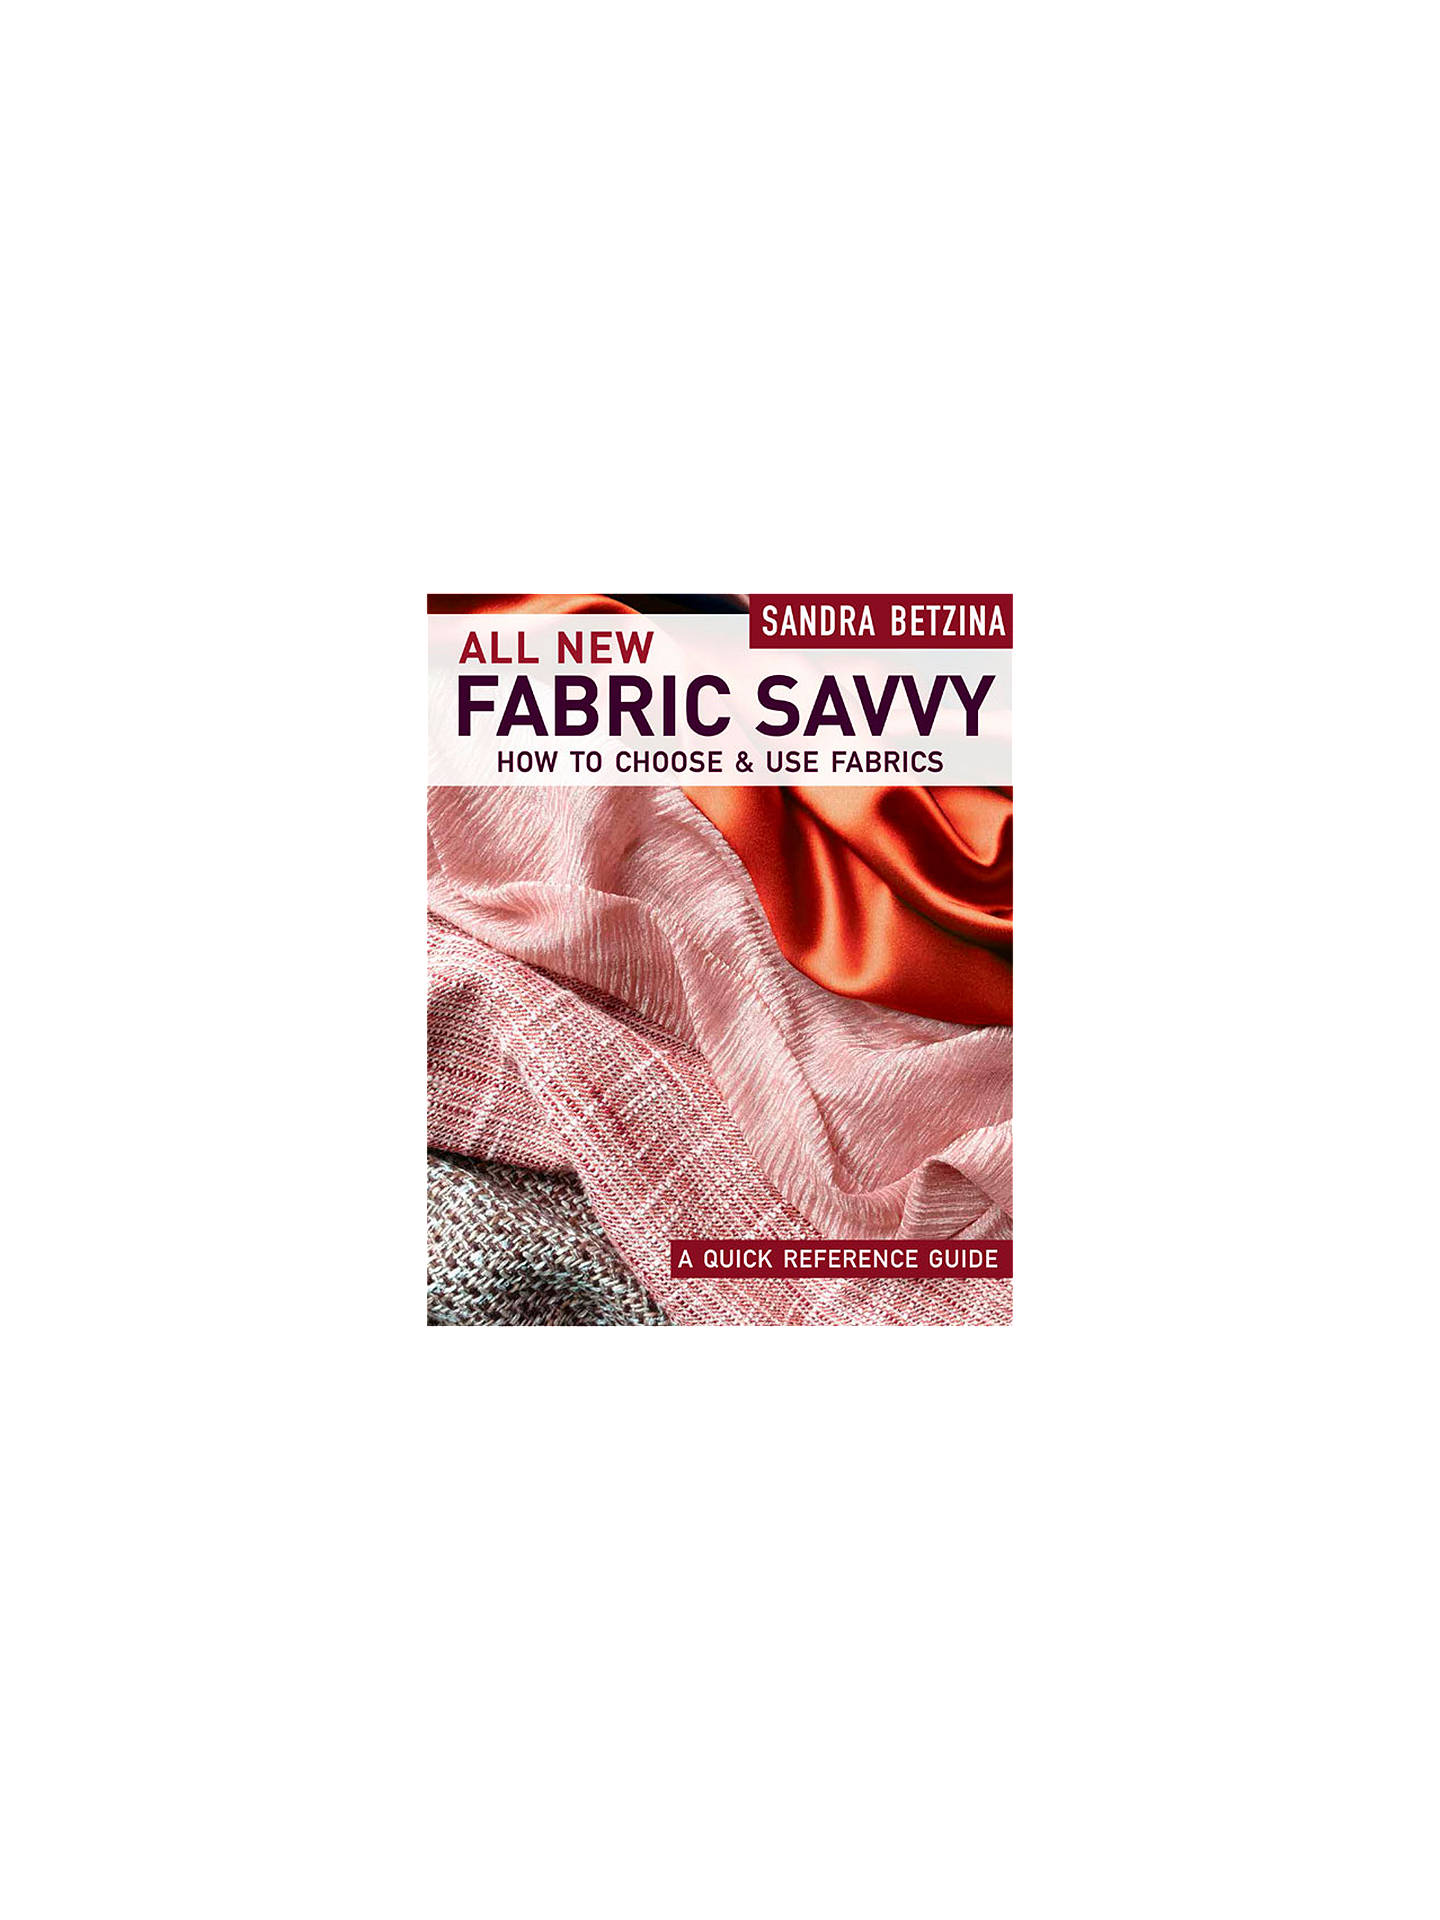 660230b31 Buy Taunton Press All New Fabric Savvy Book by Sandra Betzina Online at  johnlewis.com